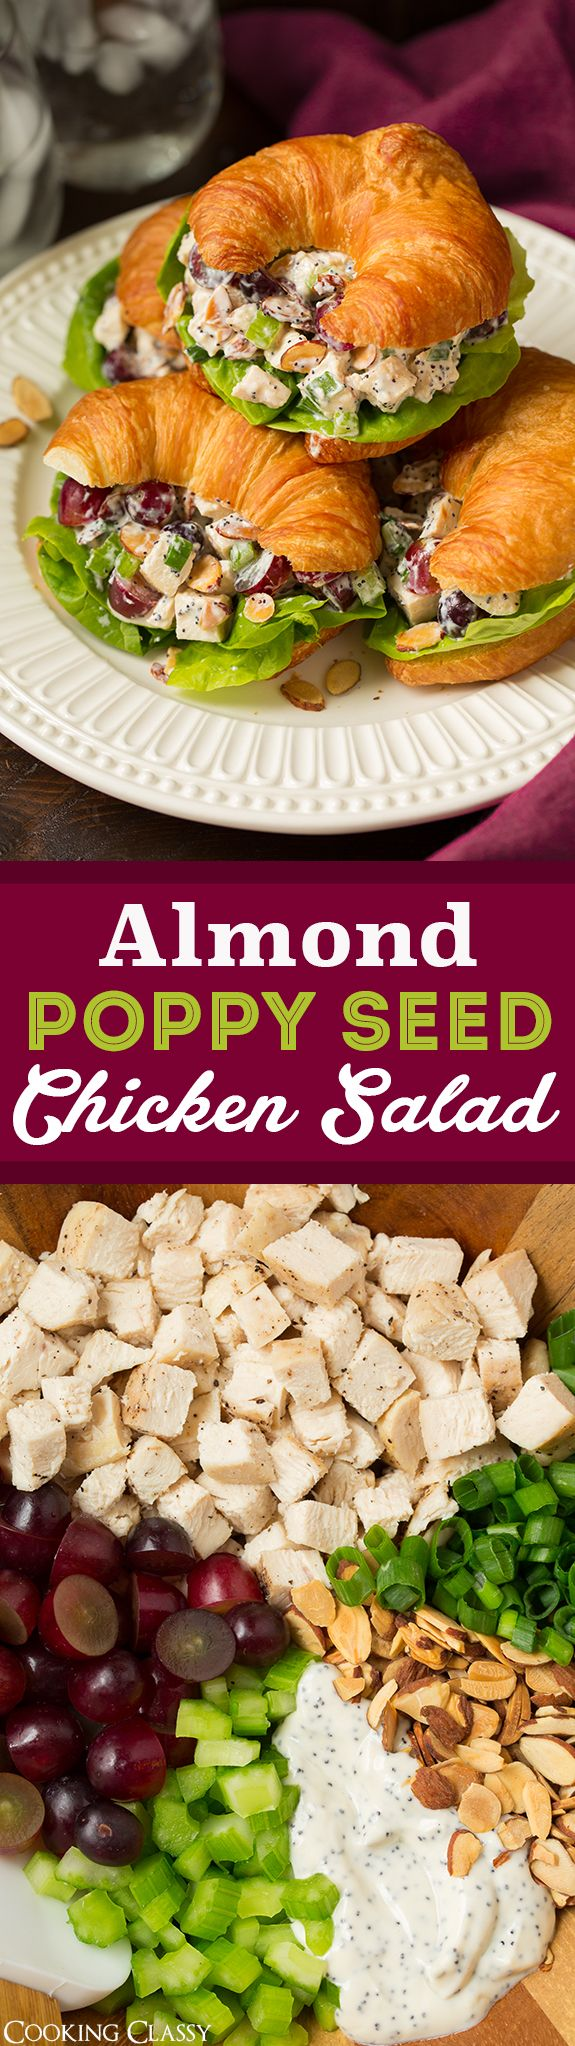 Almond Poppy Seed Chicken Salad - one of my favorite chicken salad recipes! Love…